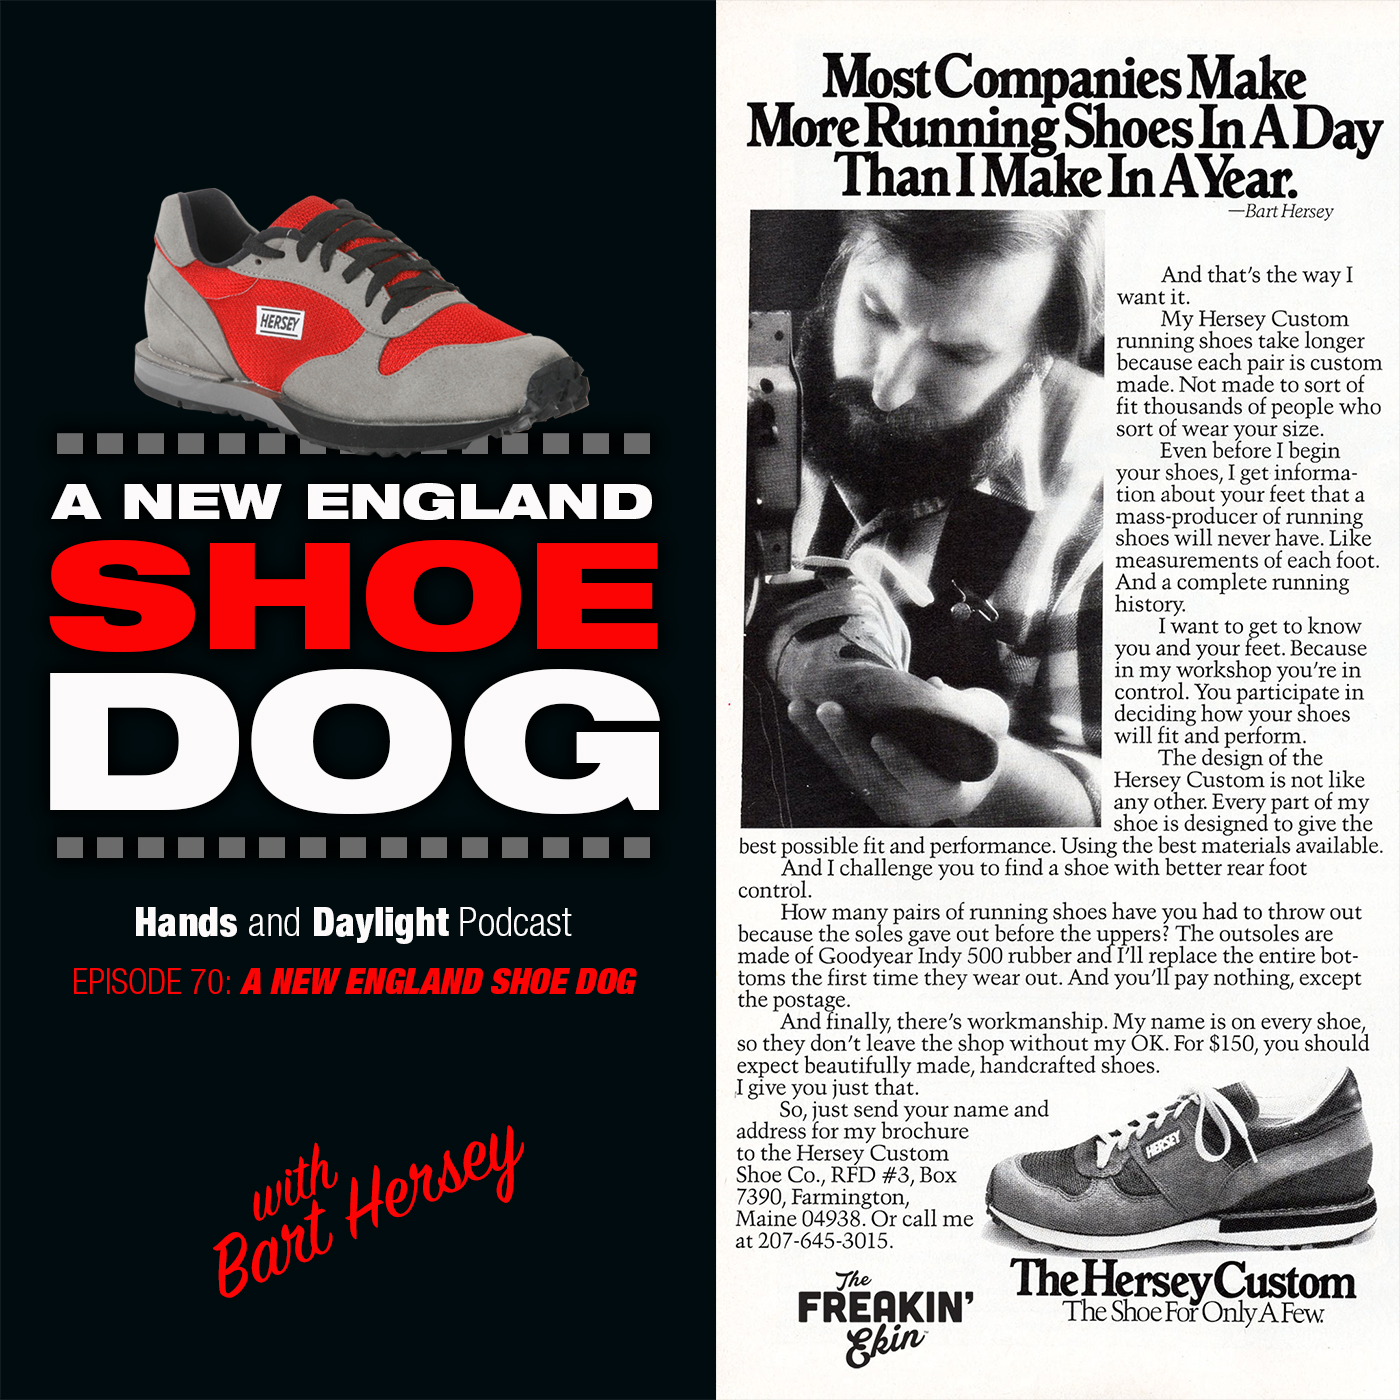 E70: A NEW ENGLAND SHOE DOG